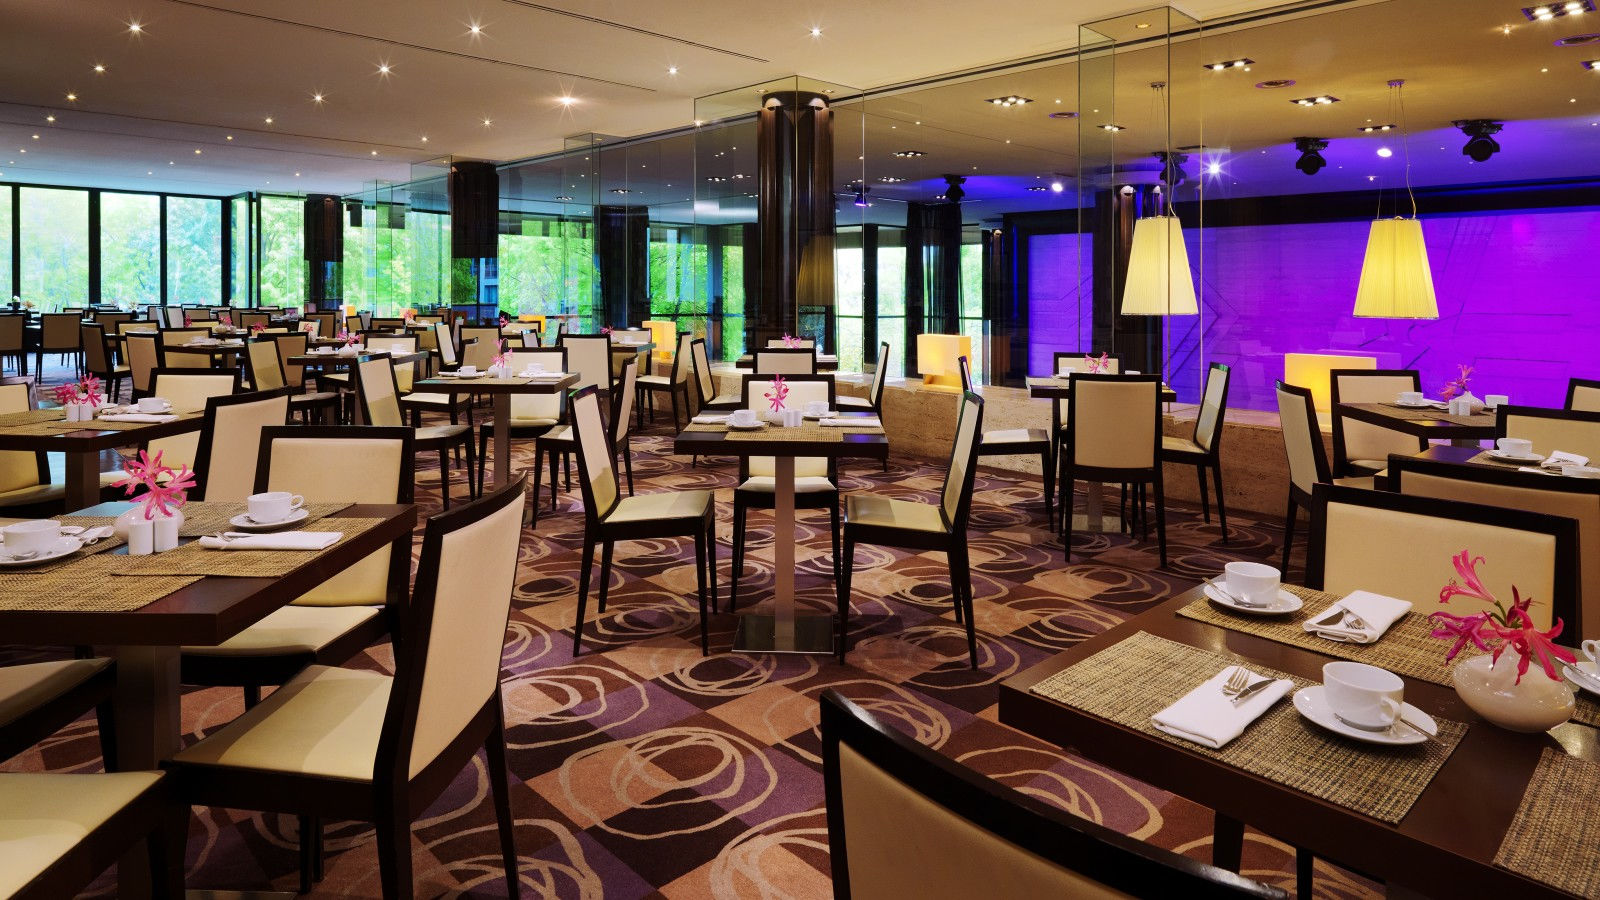 The Westin Leipzig Restaurant Brühl